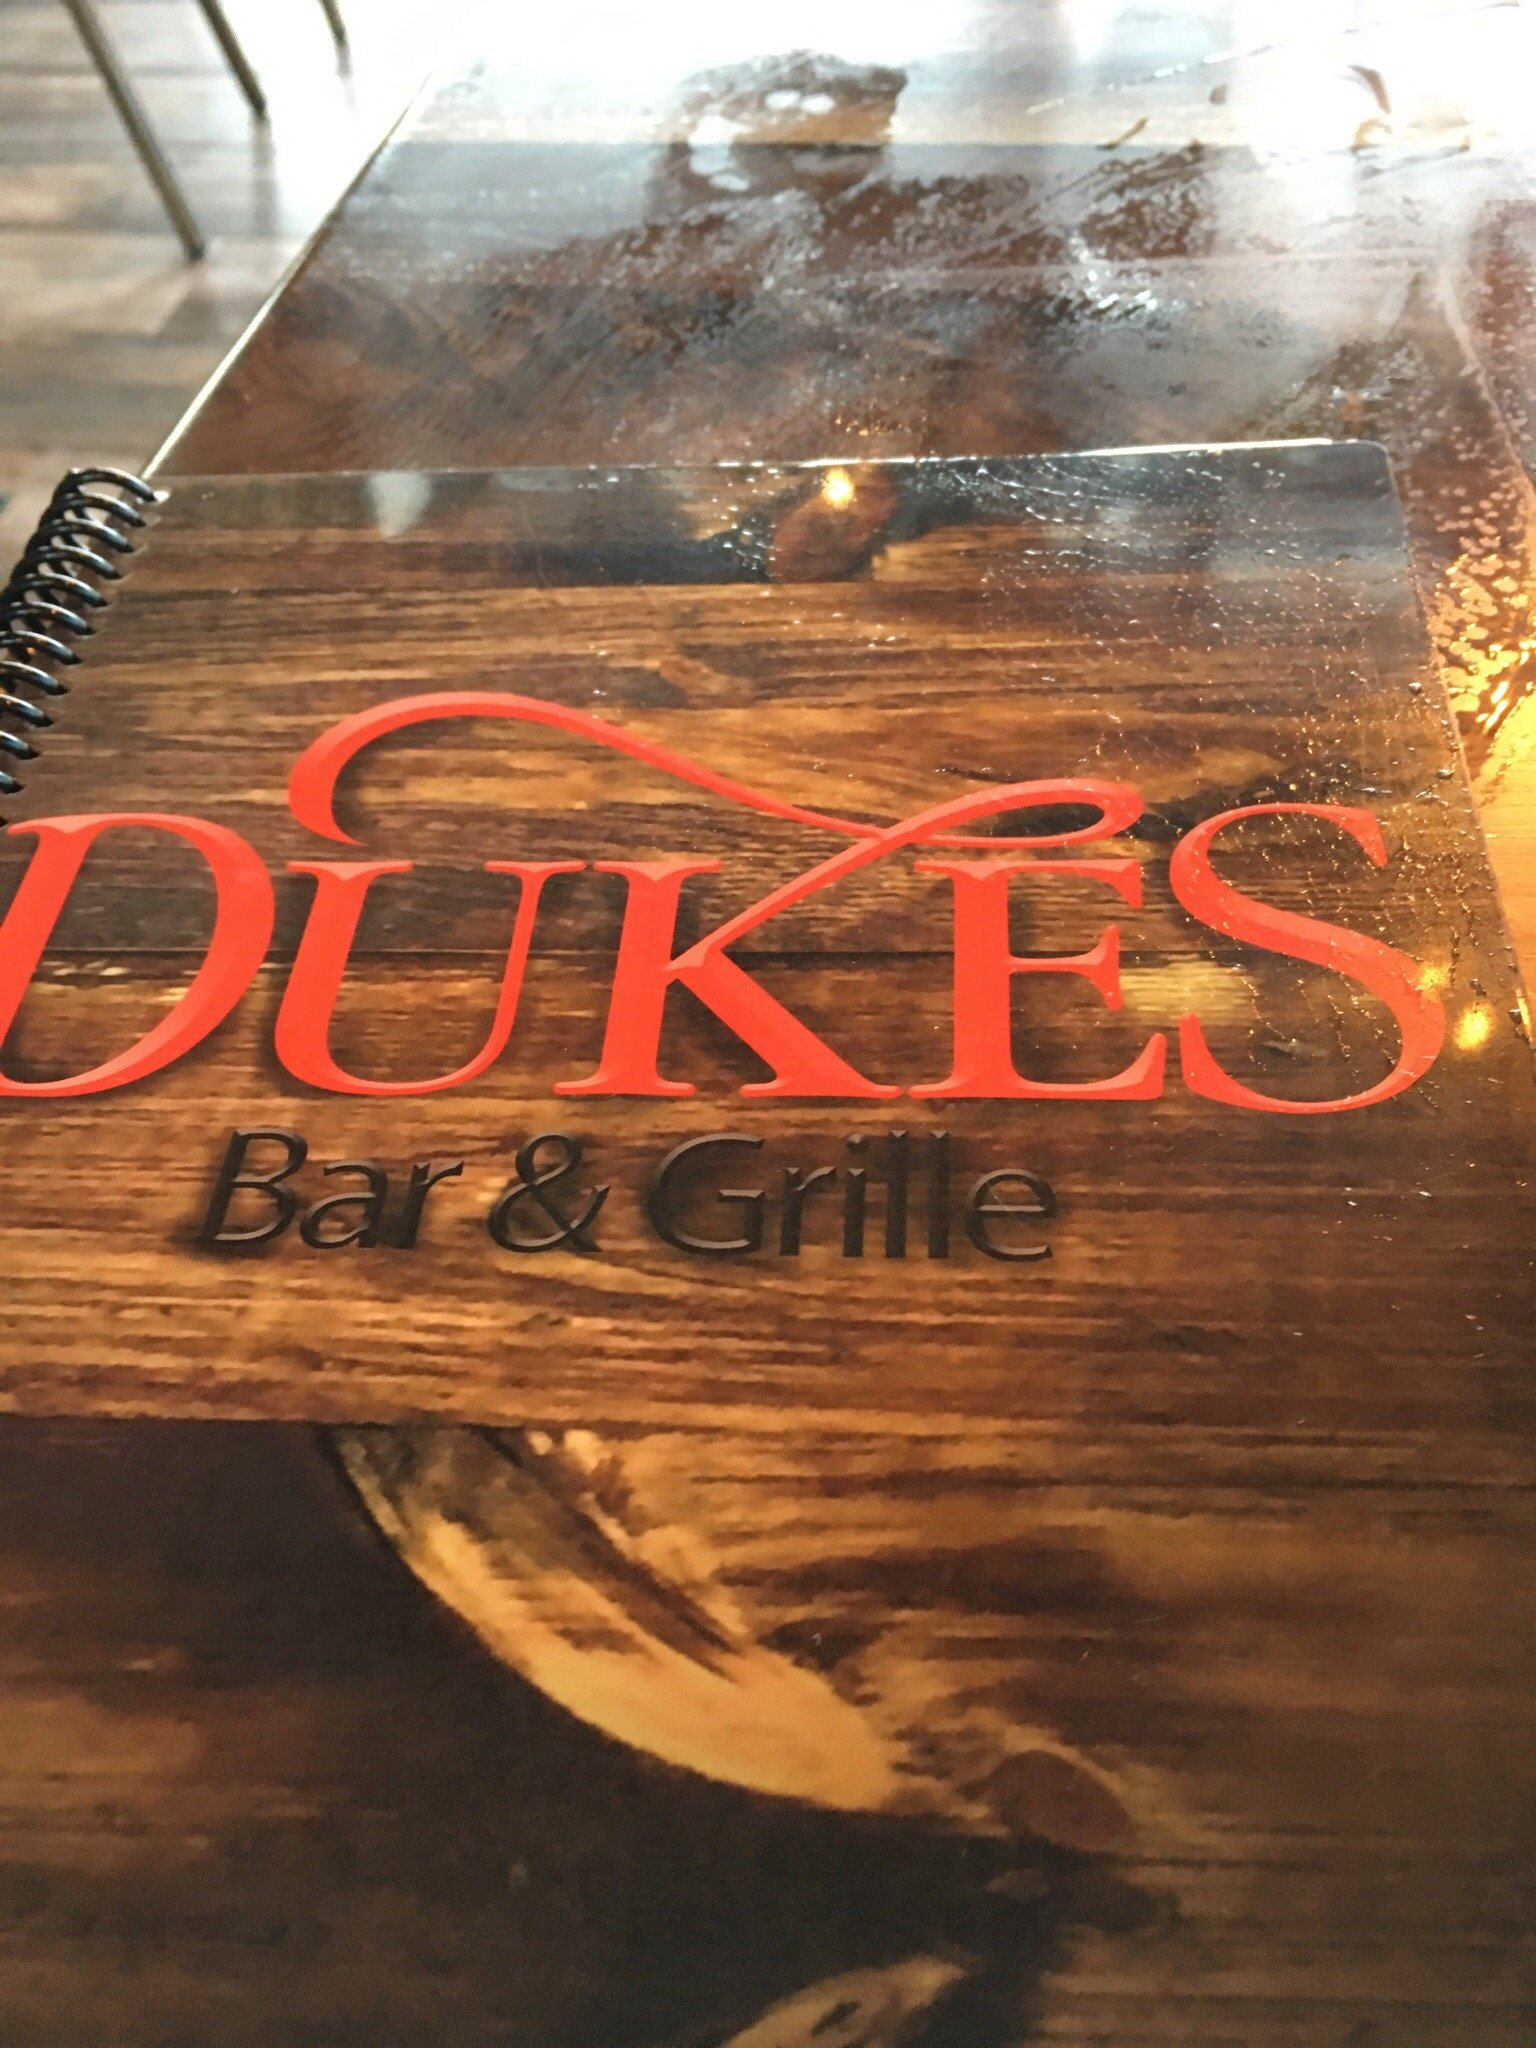 Duke's Bar and Grille